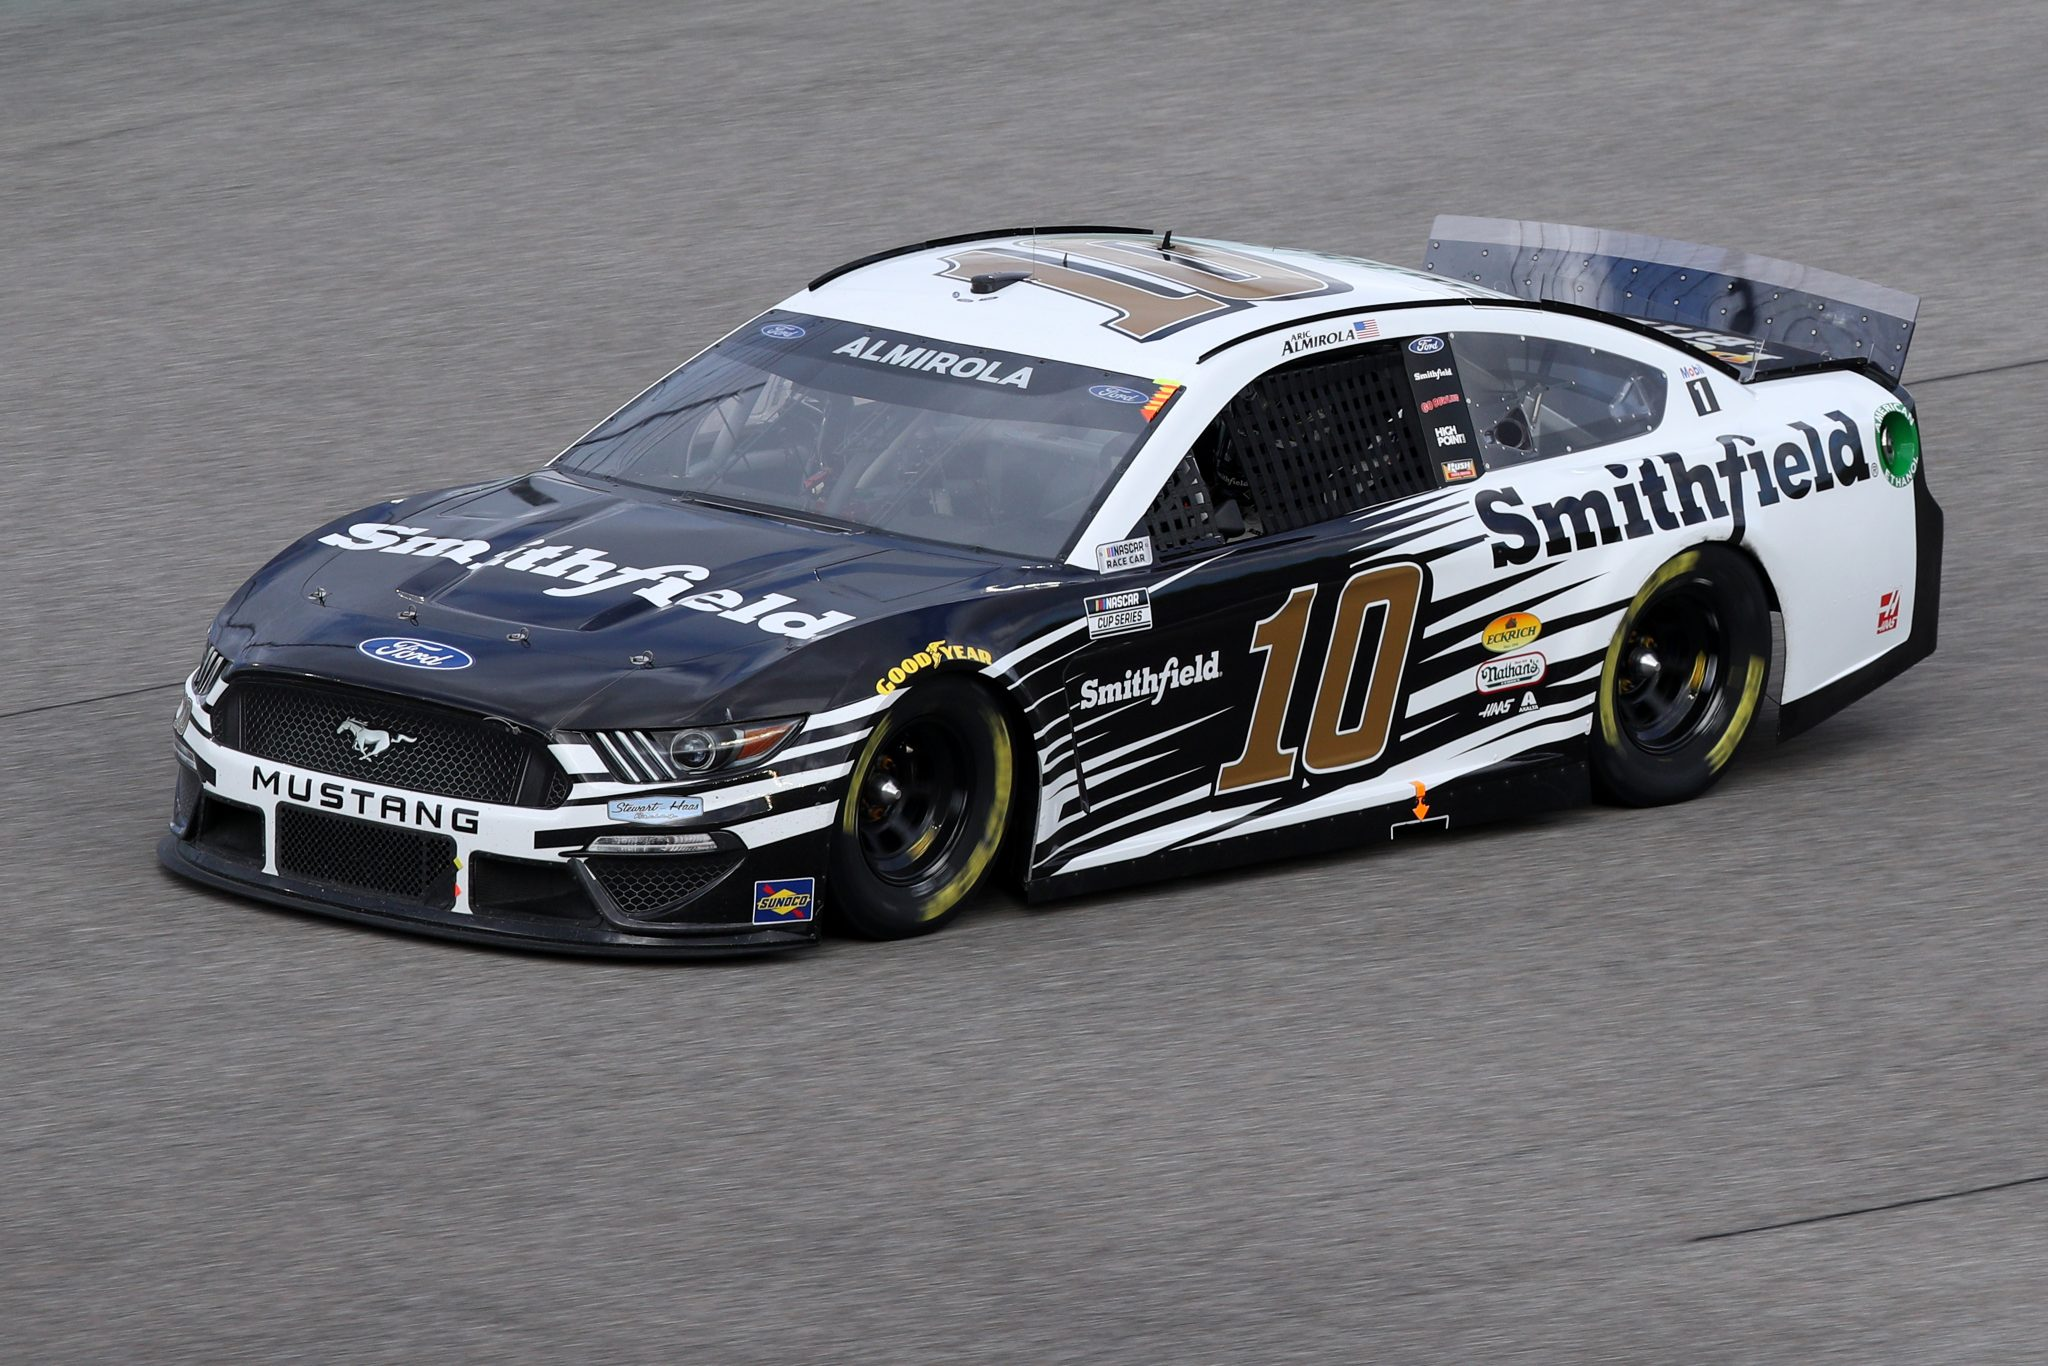 HOMESTEAD, FLORIDA - FEBRUARY 28: Aric Almirola, driver of the #10 Smithfield Ford, drives during the NASCAR Cup Series Dixie Vodka 400 at Homestead-Miami Speedway on February 28, 2021 in Homestead, Florida. (Photo by Sean Gardner/Getty Images) | Getty Images